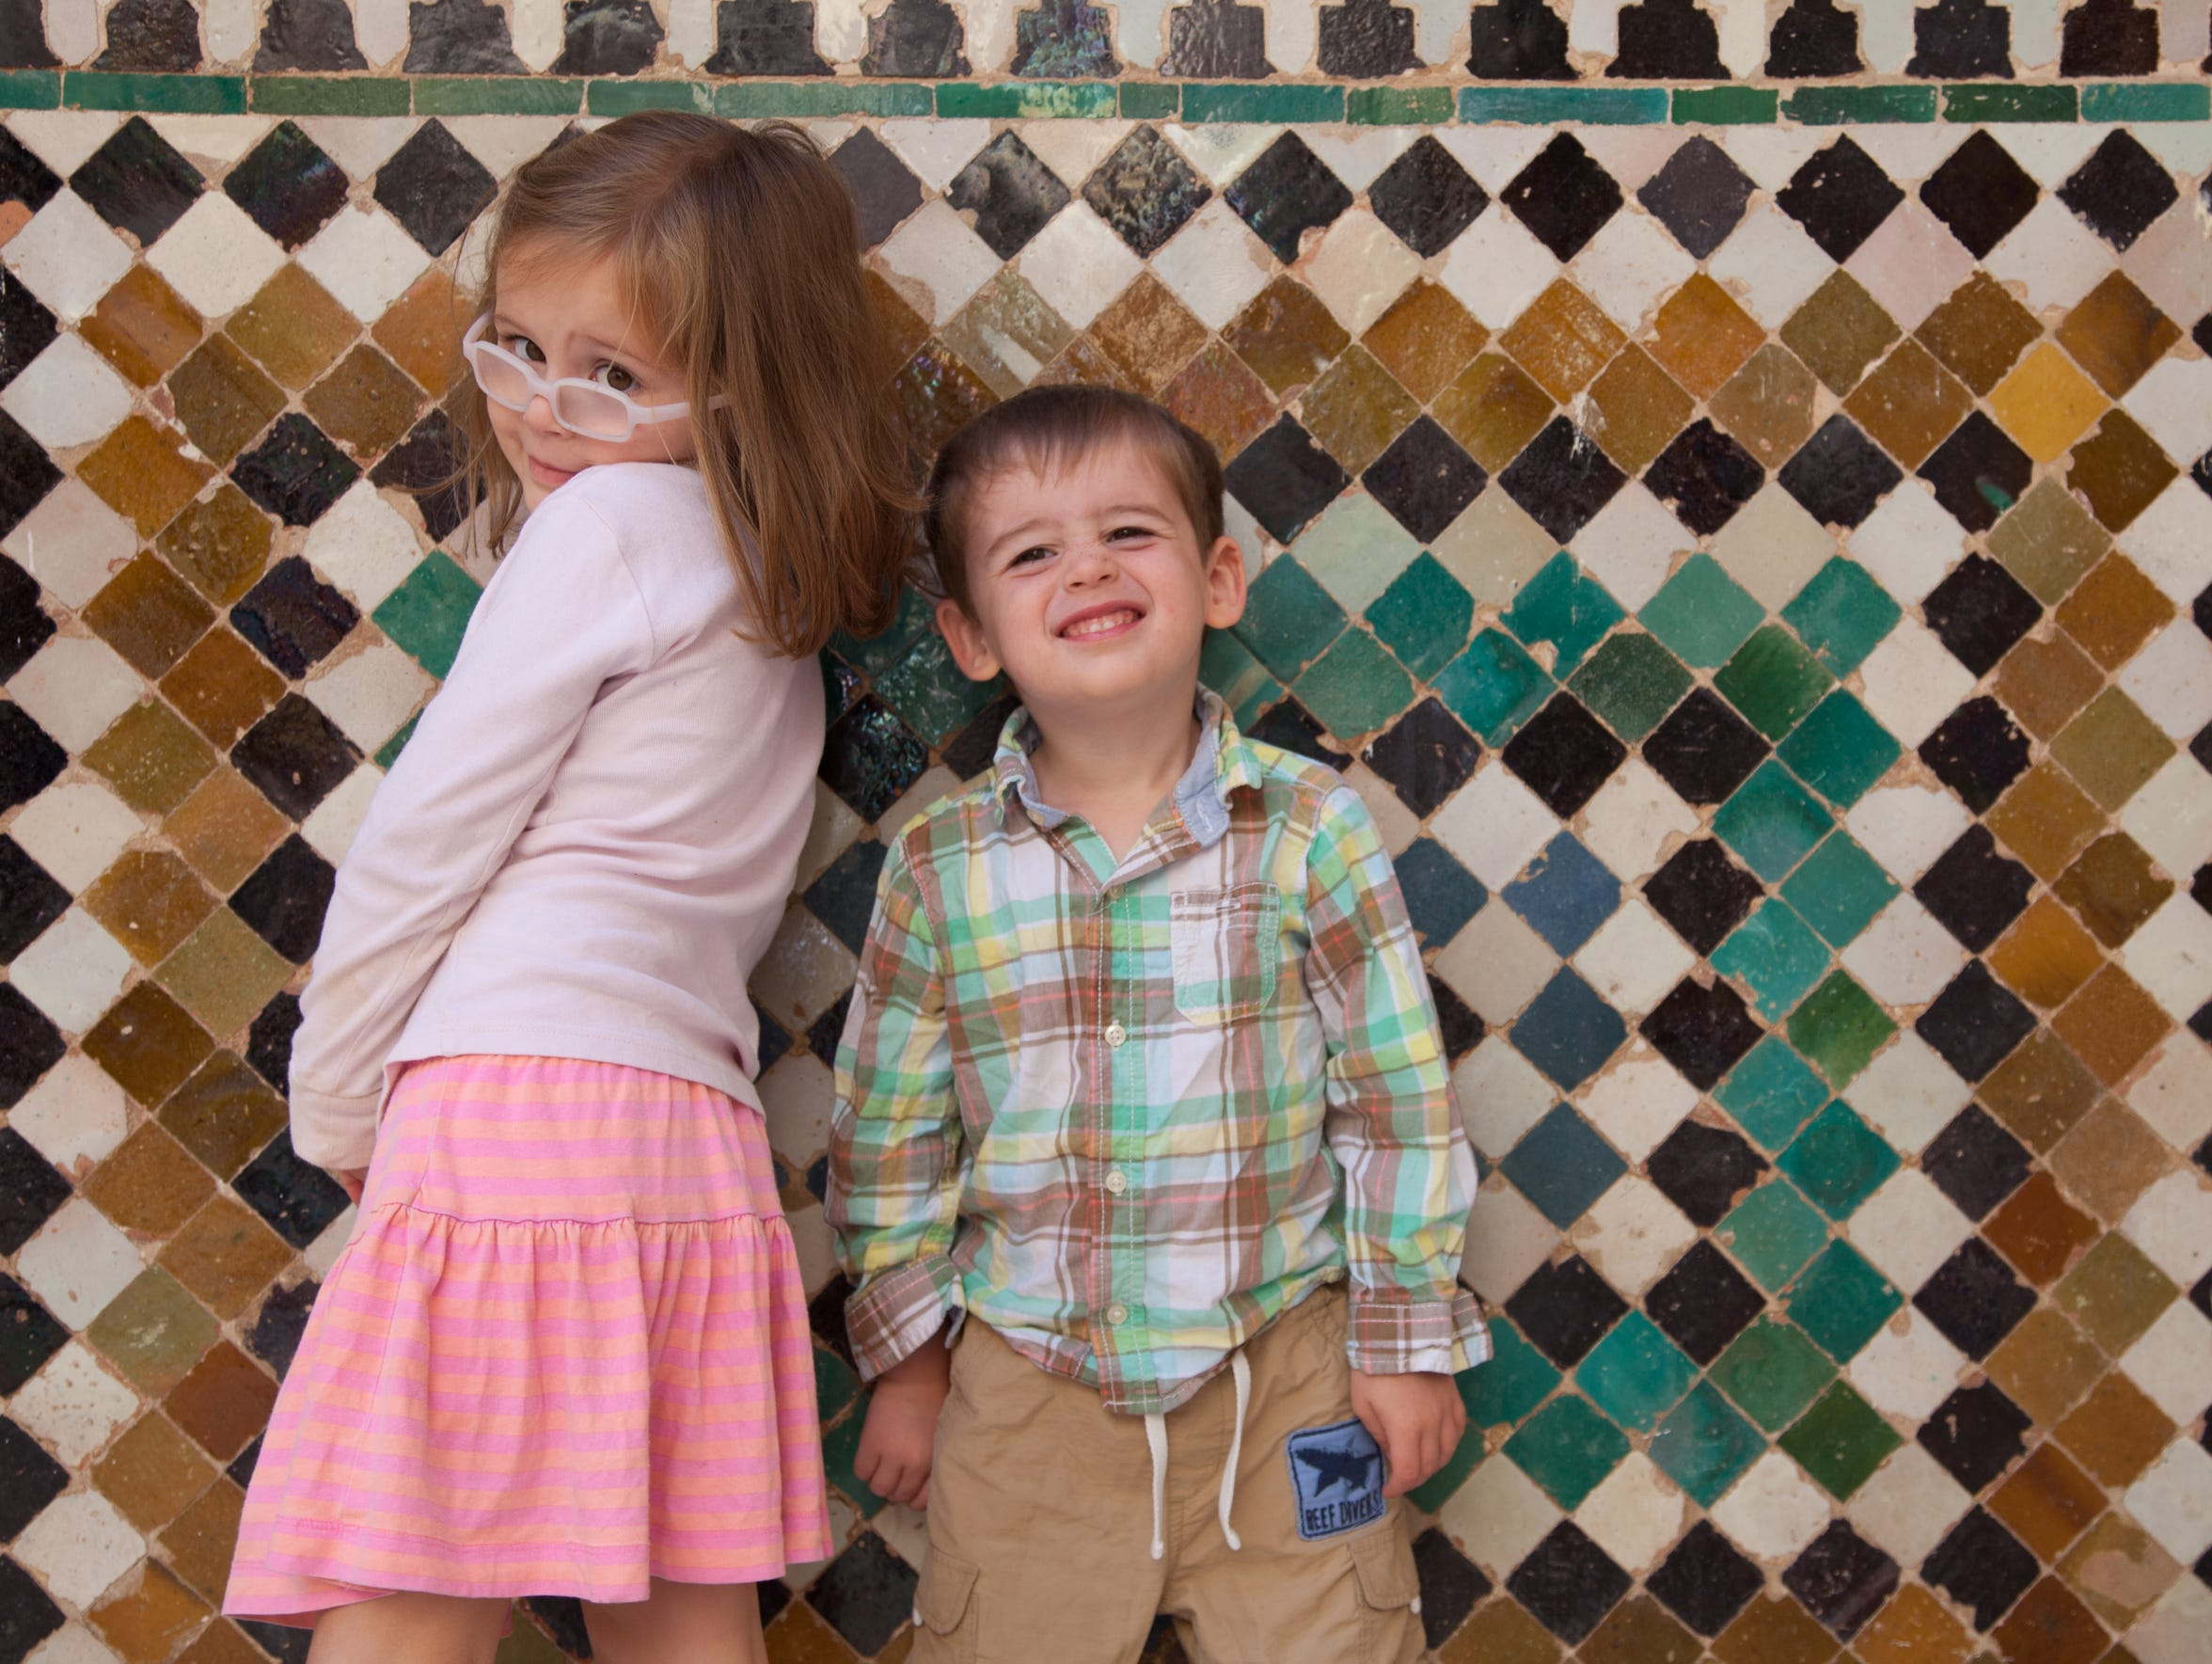 Harper and Walker Hughey in front of the glazed tiles